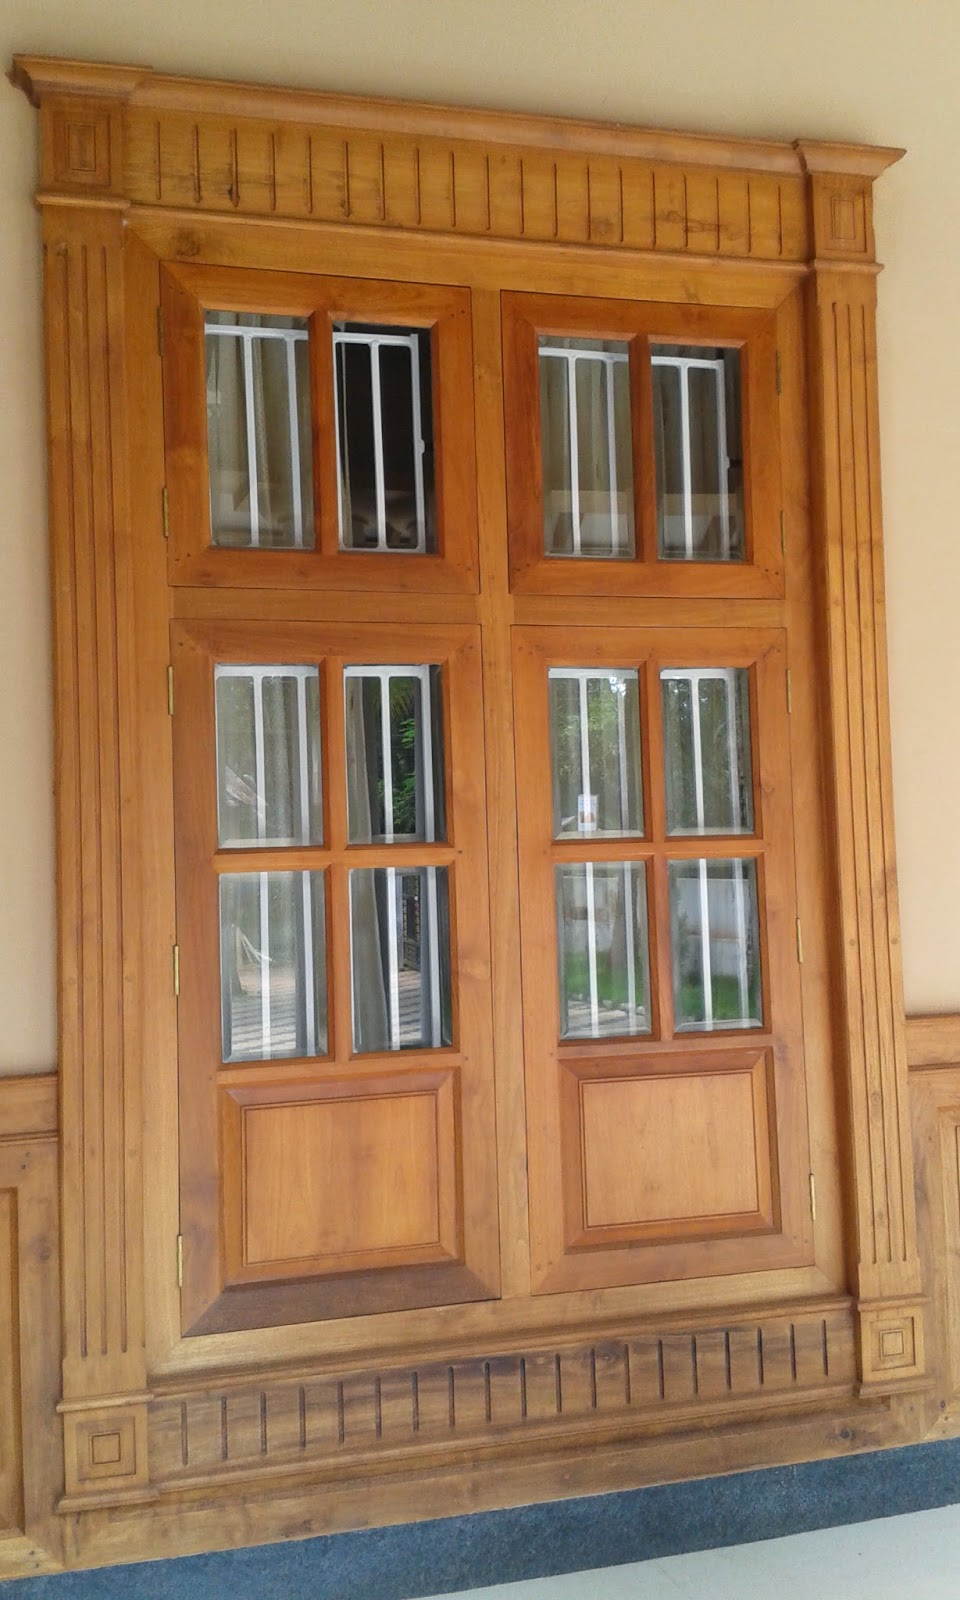 Kerala style carpenter works and designs main entrance wooden window frame and door designs - House window design photos ...